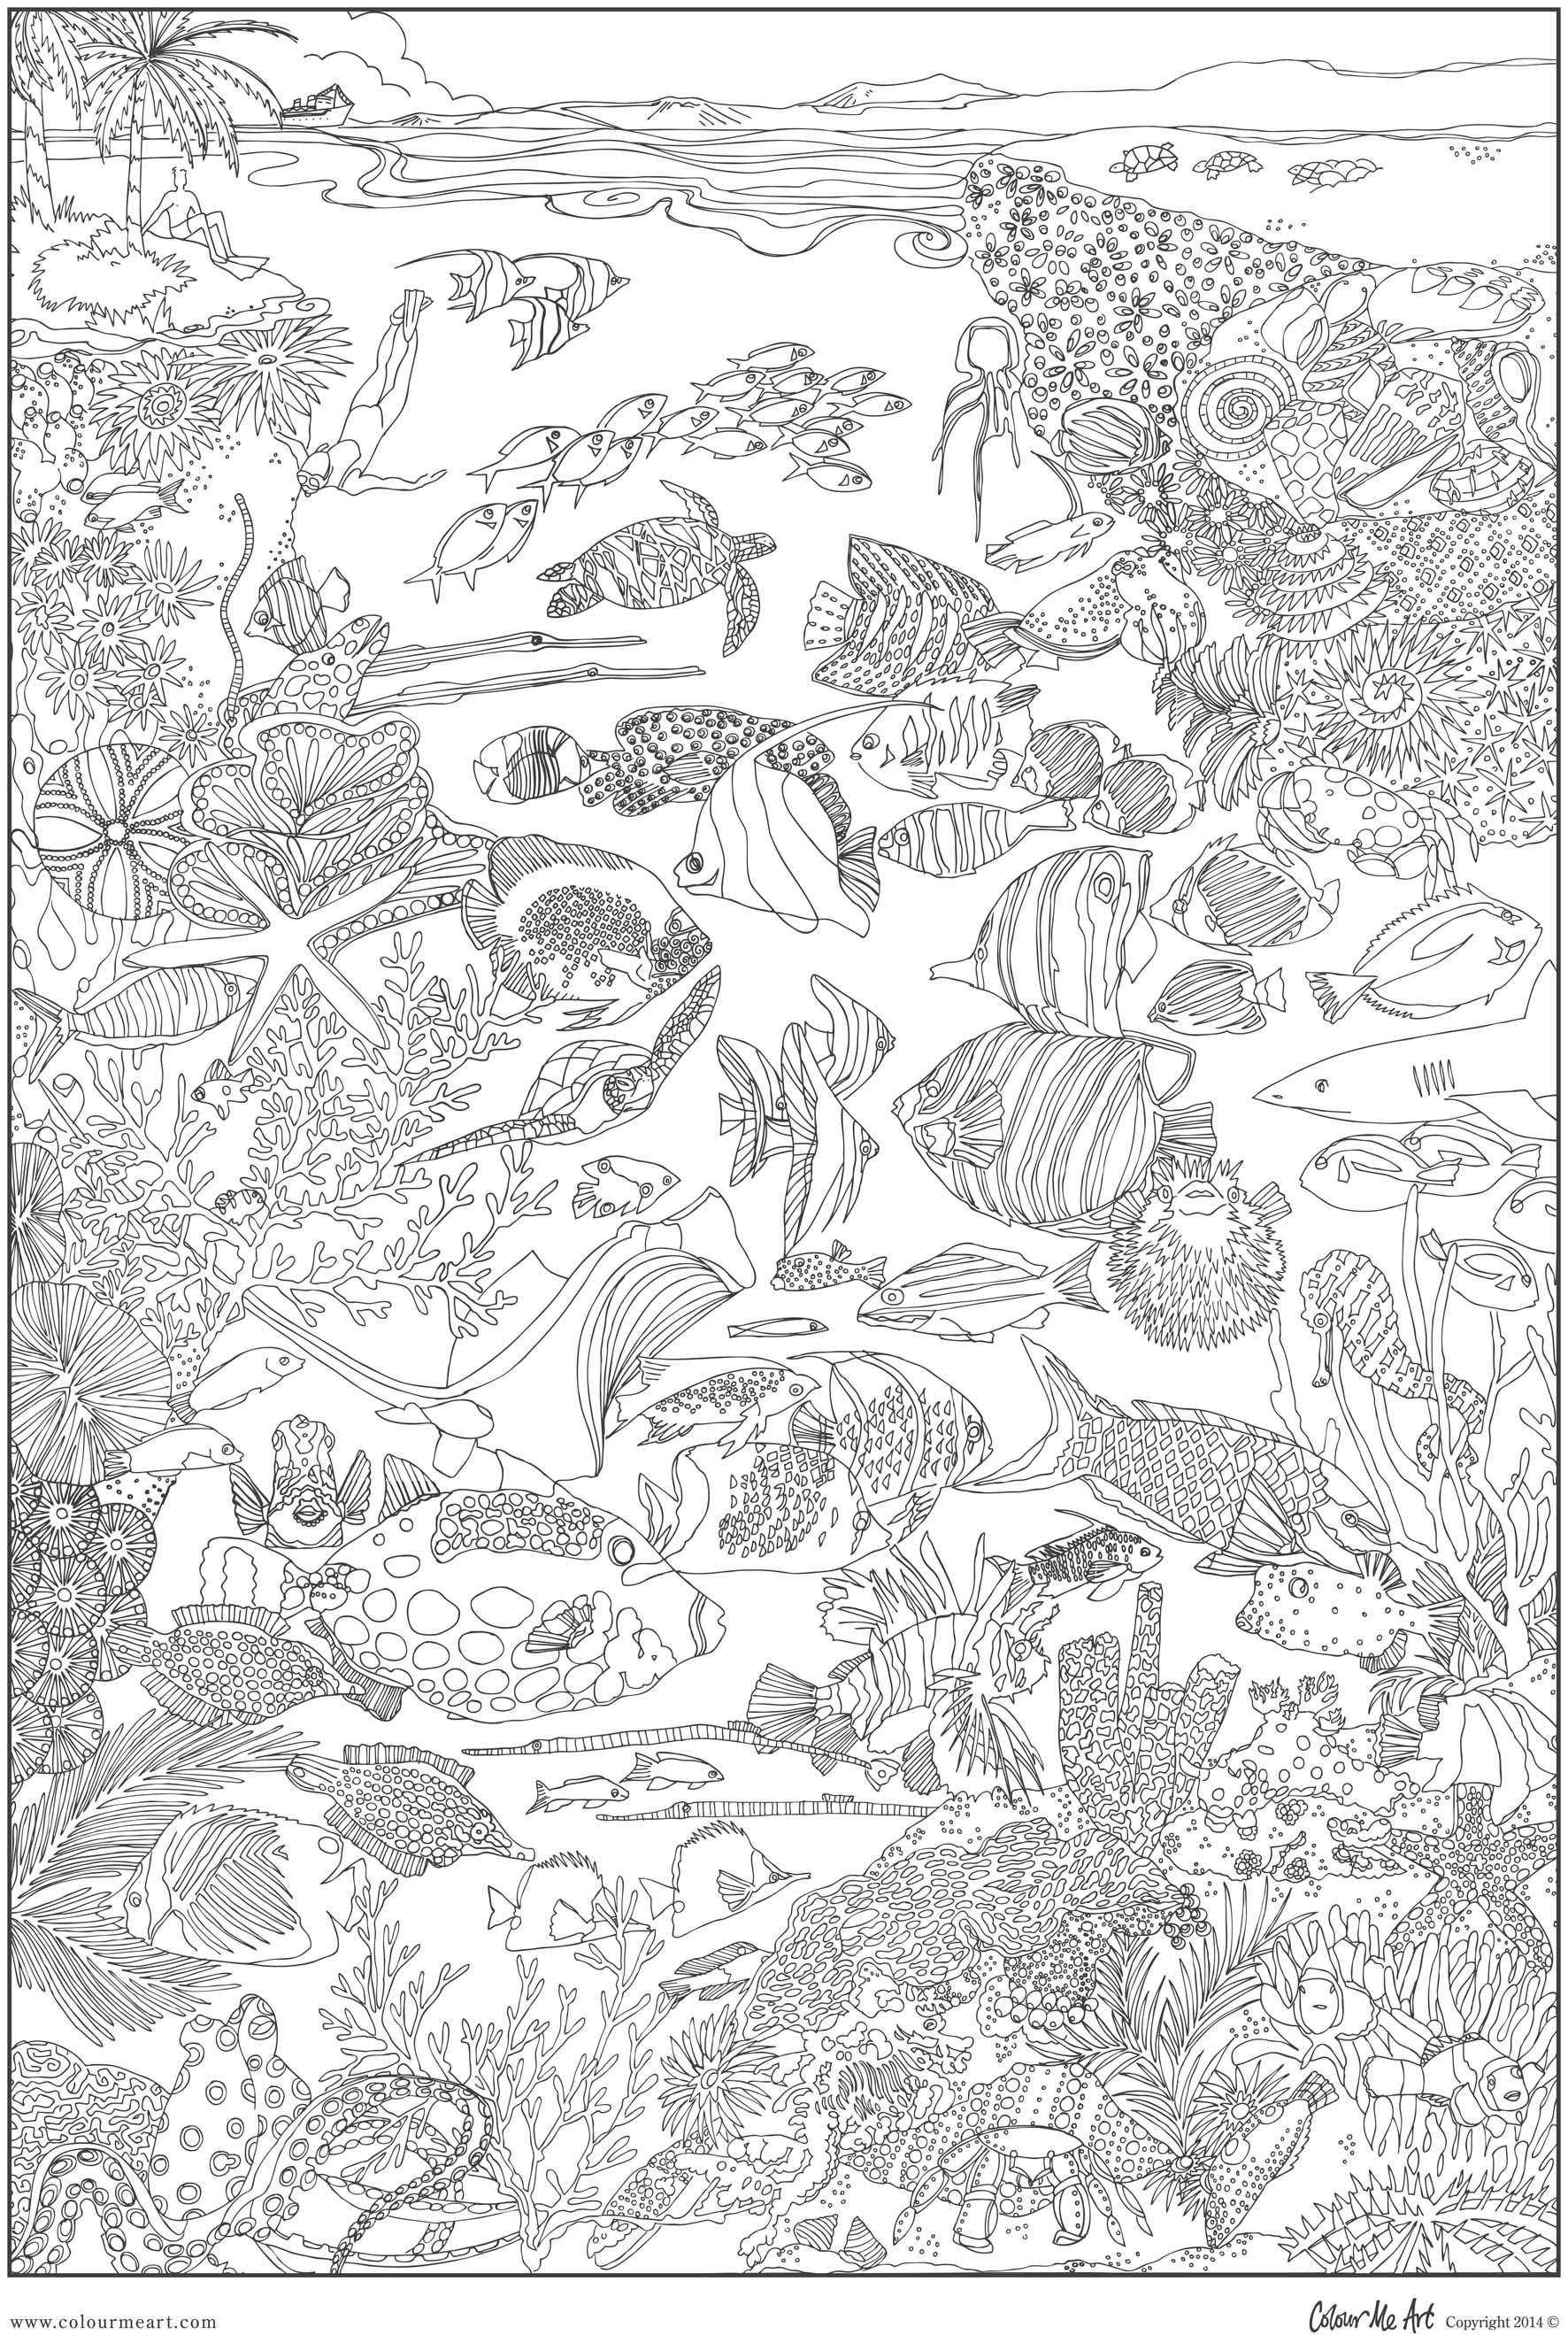 Great barrier reef coloring pages bing images aquatic for Coloring pages of coral reefs